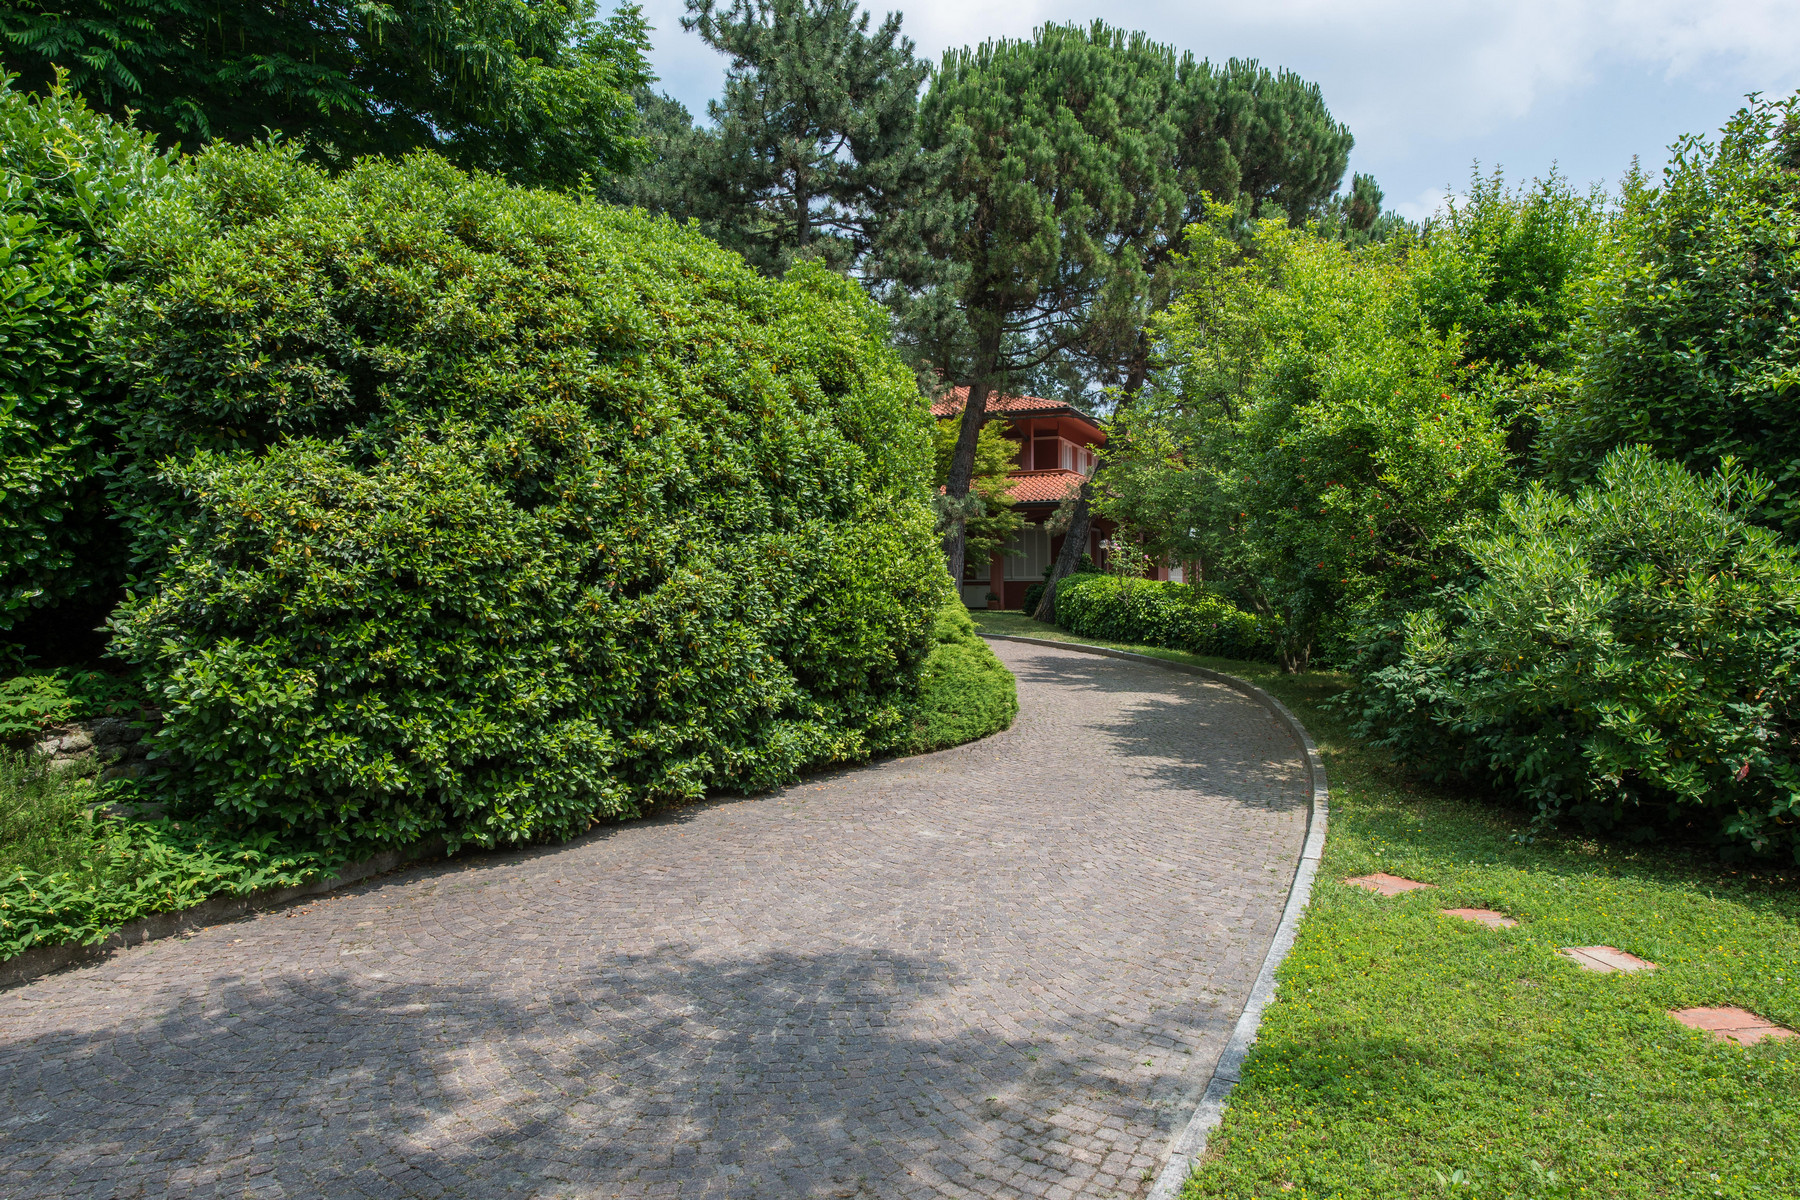 Additional photo for property listing at Incomparable villa with swimming pool on Turin hills Via Barbara Allason Pecetto Torinese, Turin 10020 Italie